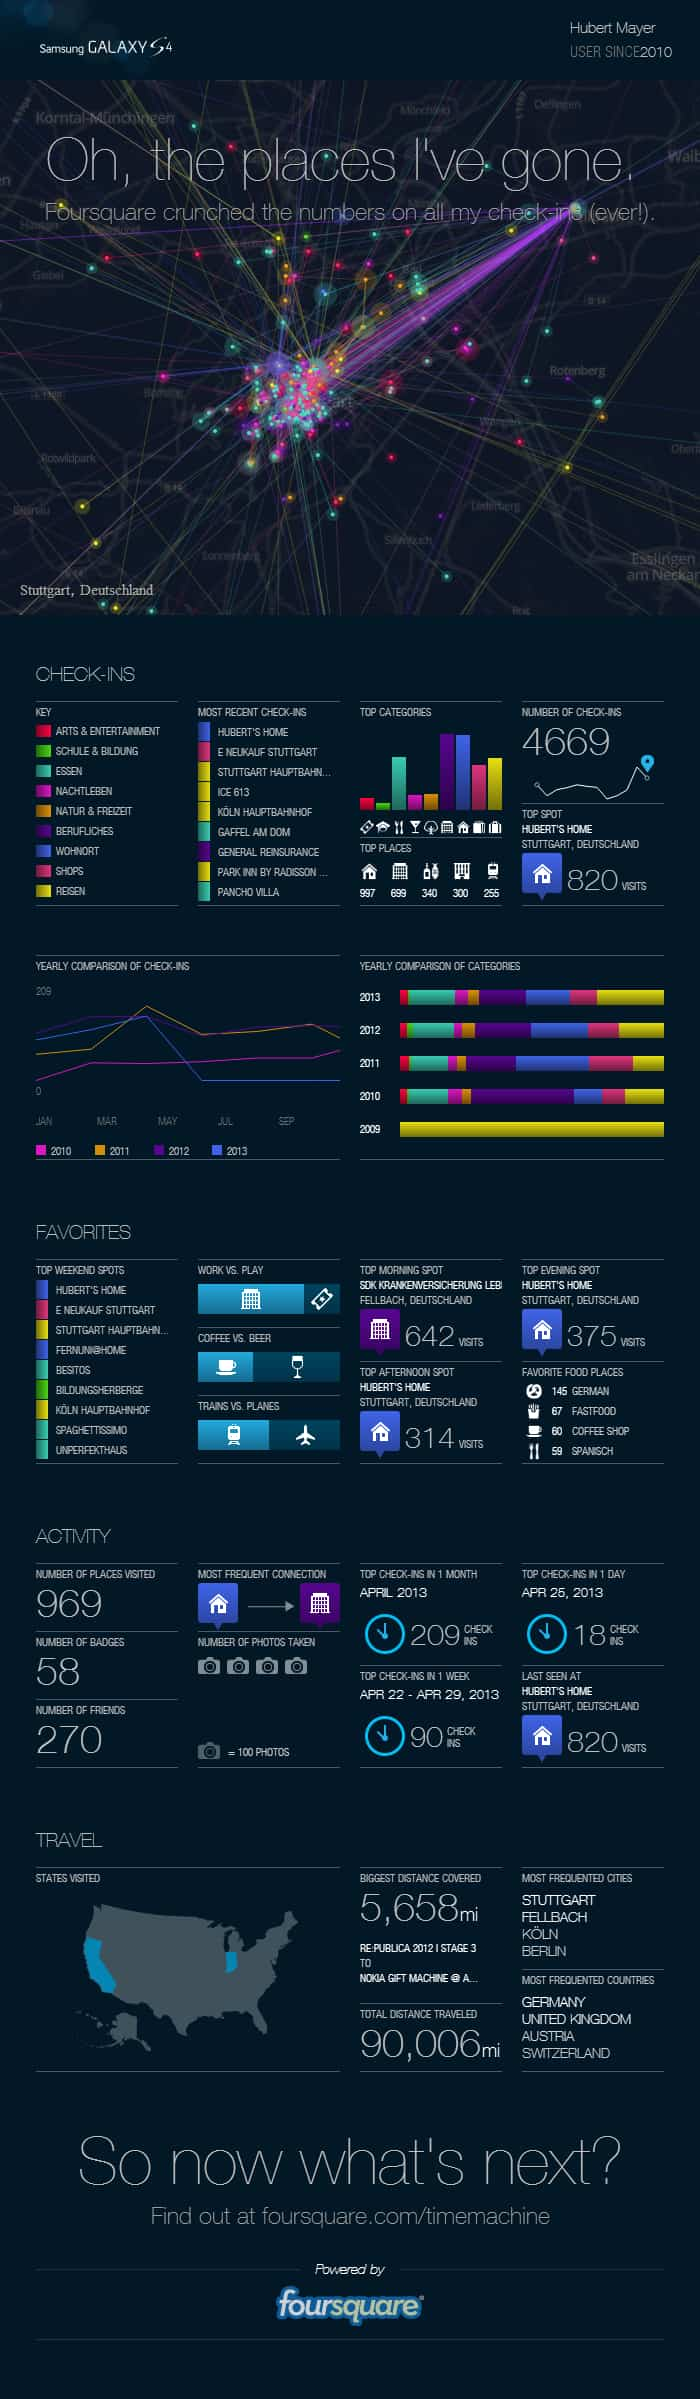 Infografik meiner Foursquarecheckins via Foursquare Timemachine